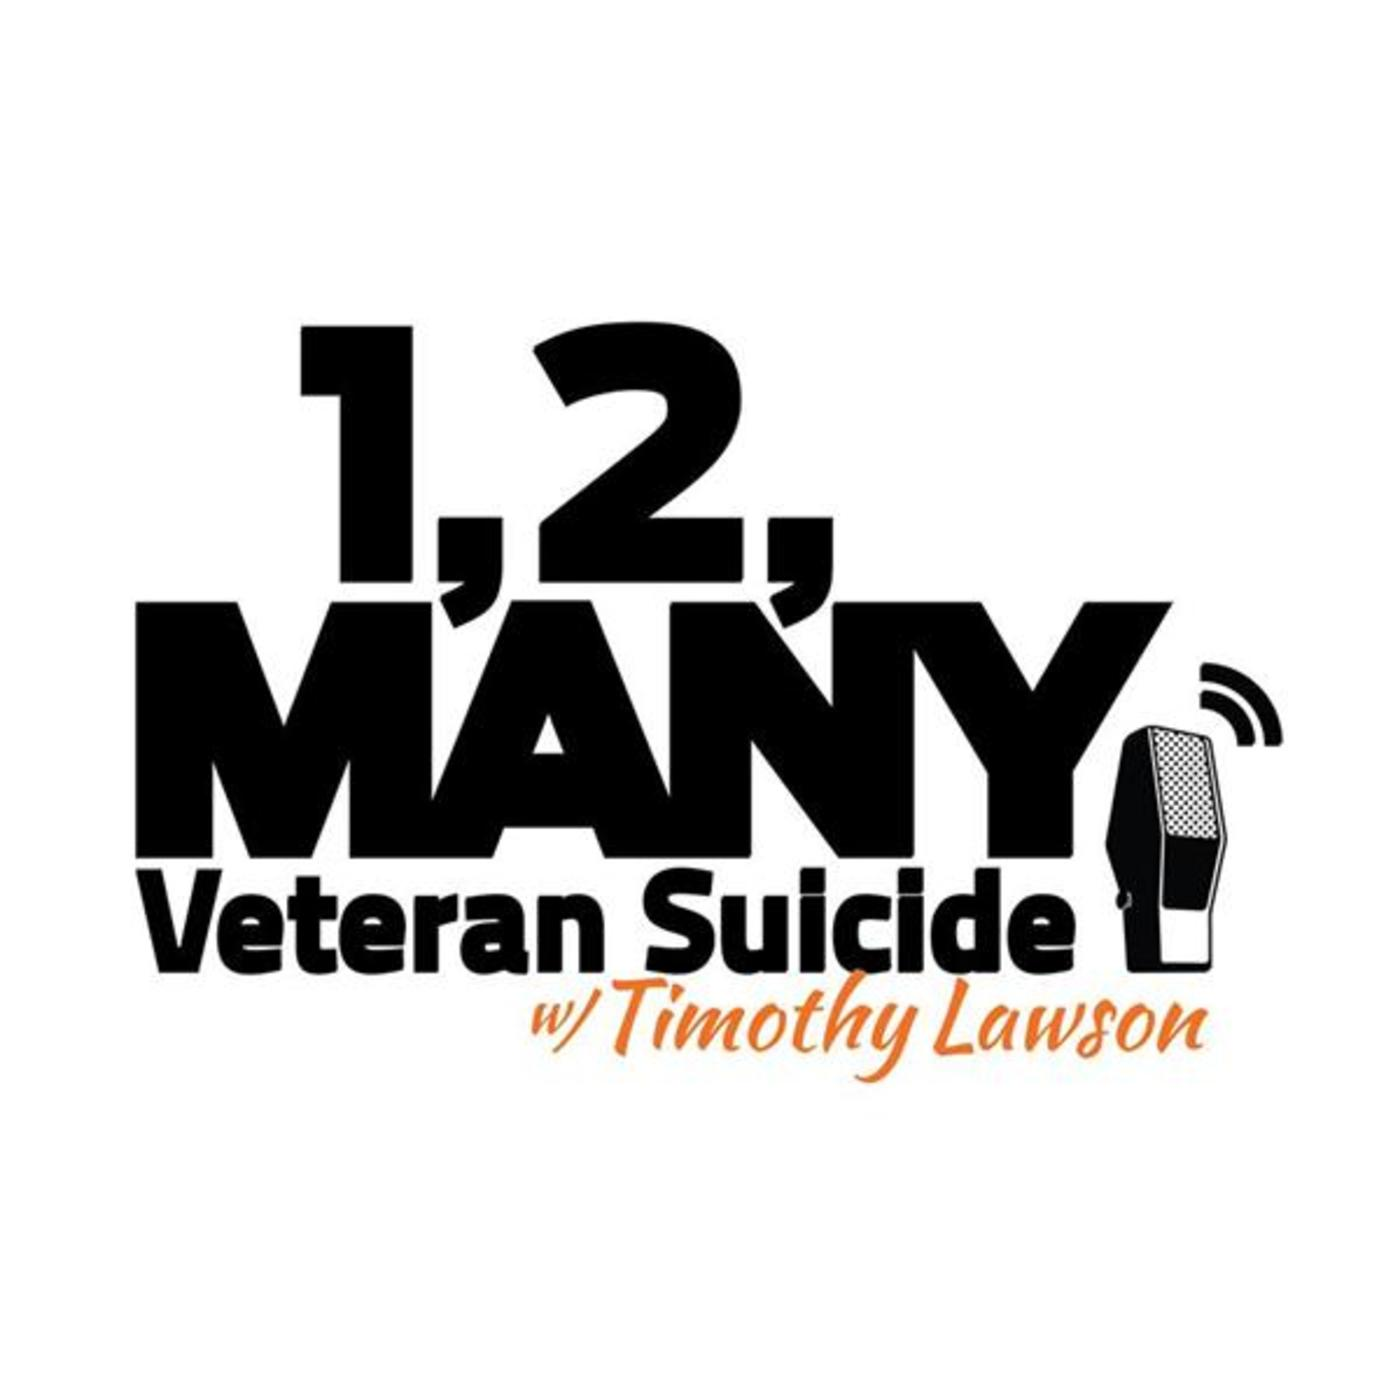 1, 2, Many: Veteran Suicide